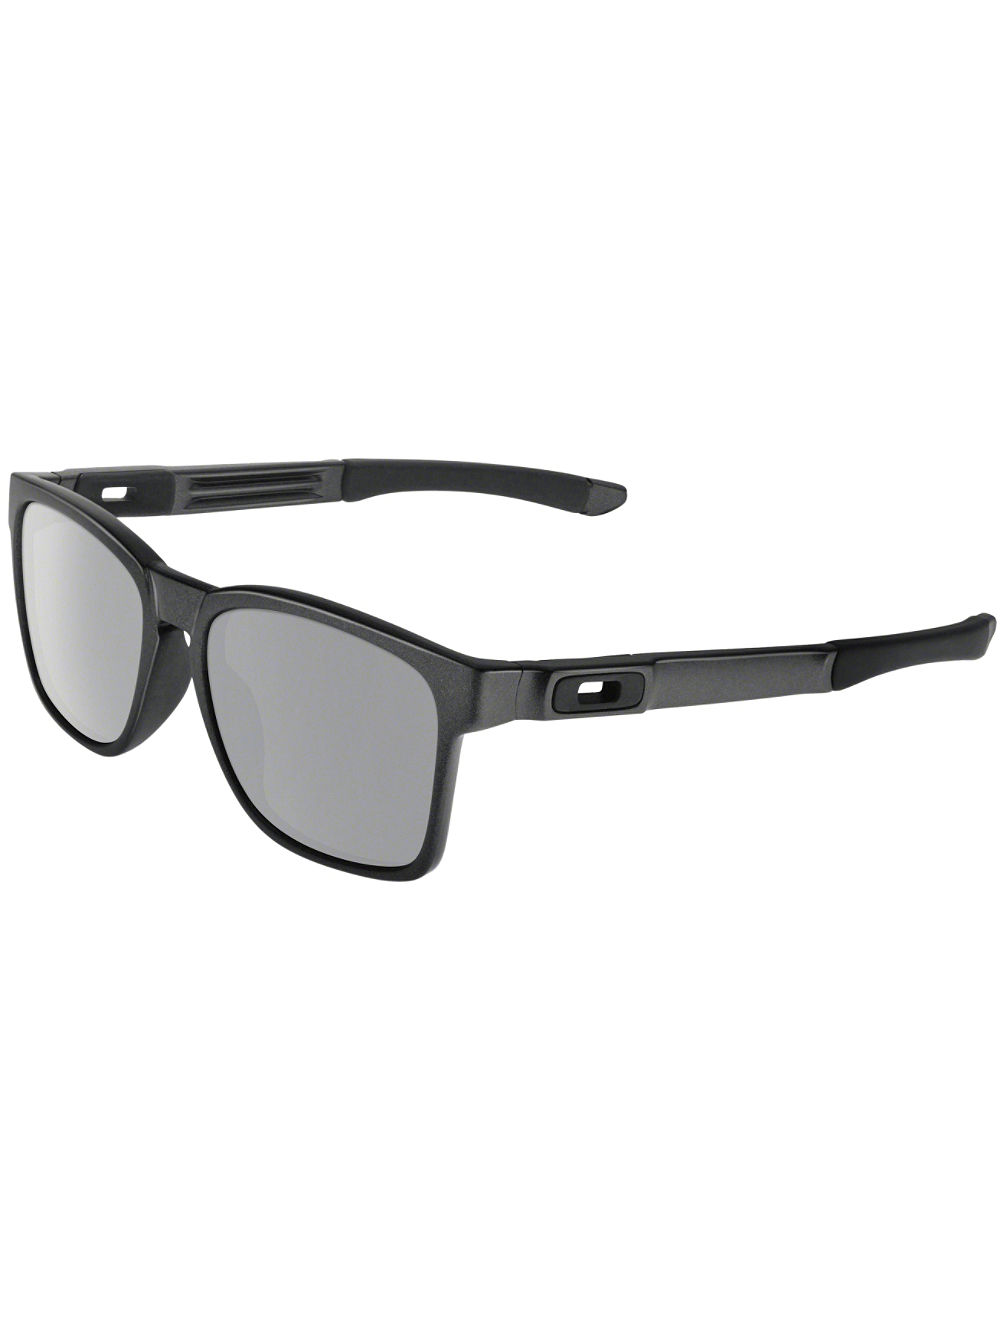 Catalyst Steel Sonnenbrille